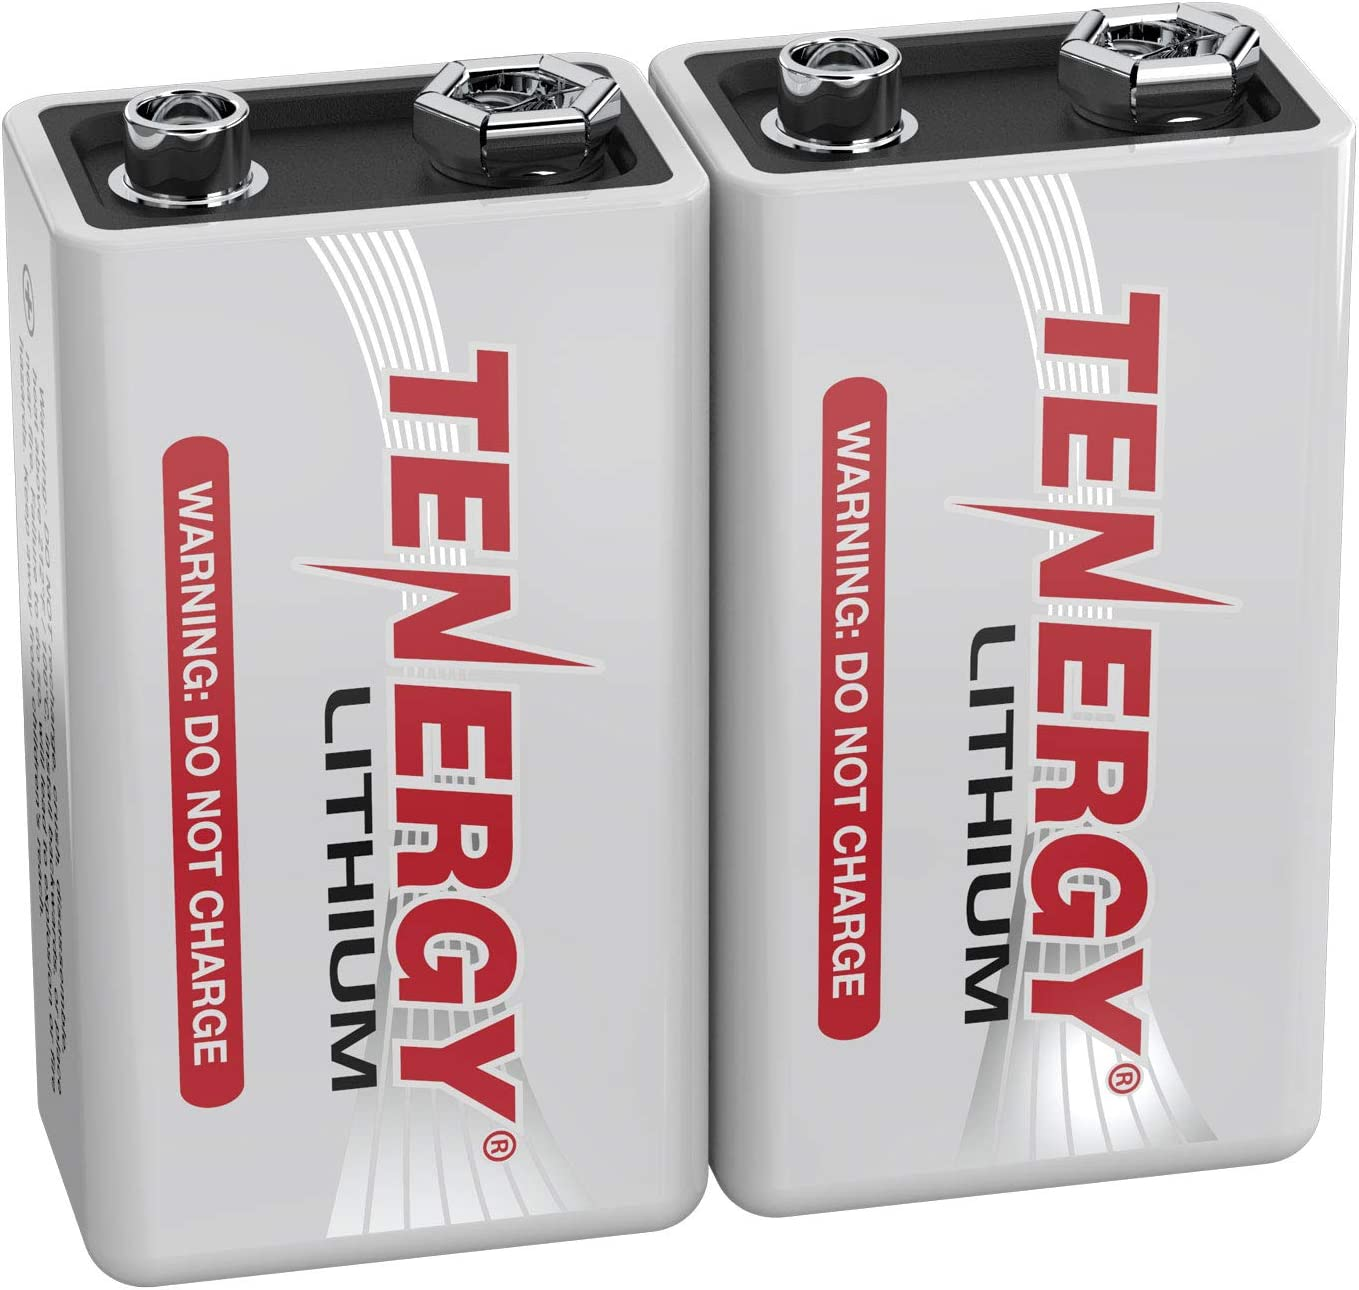 Max 61% OFF Tenergy 9V 40% OFF Cheap Sale Lithium Batteries 1200mah Non-Rechargeable